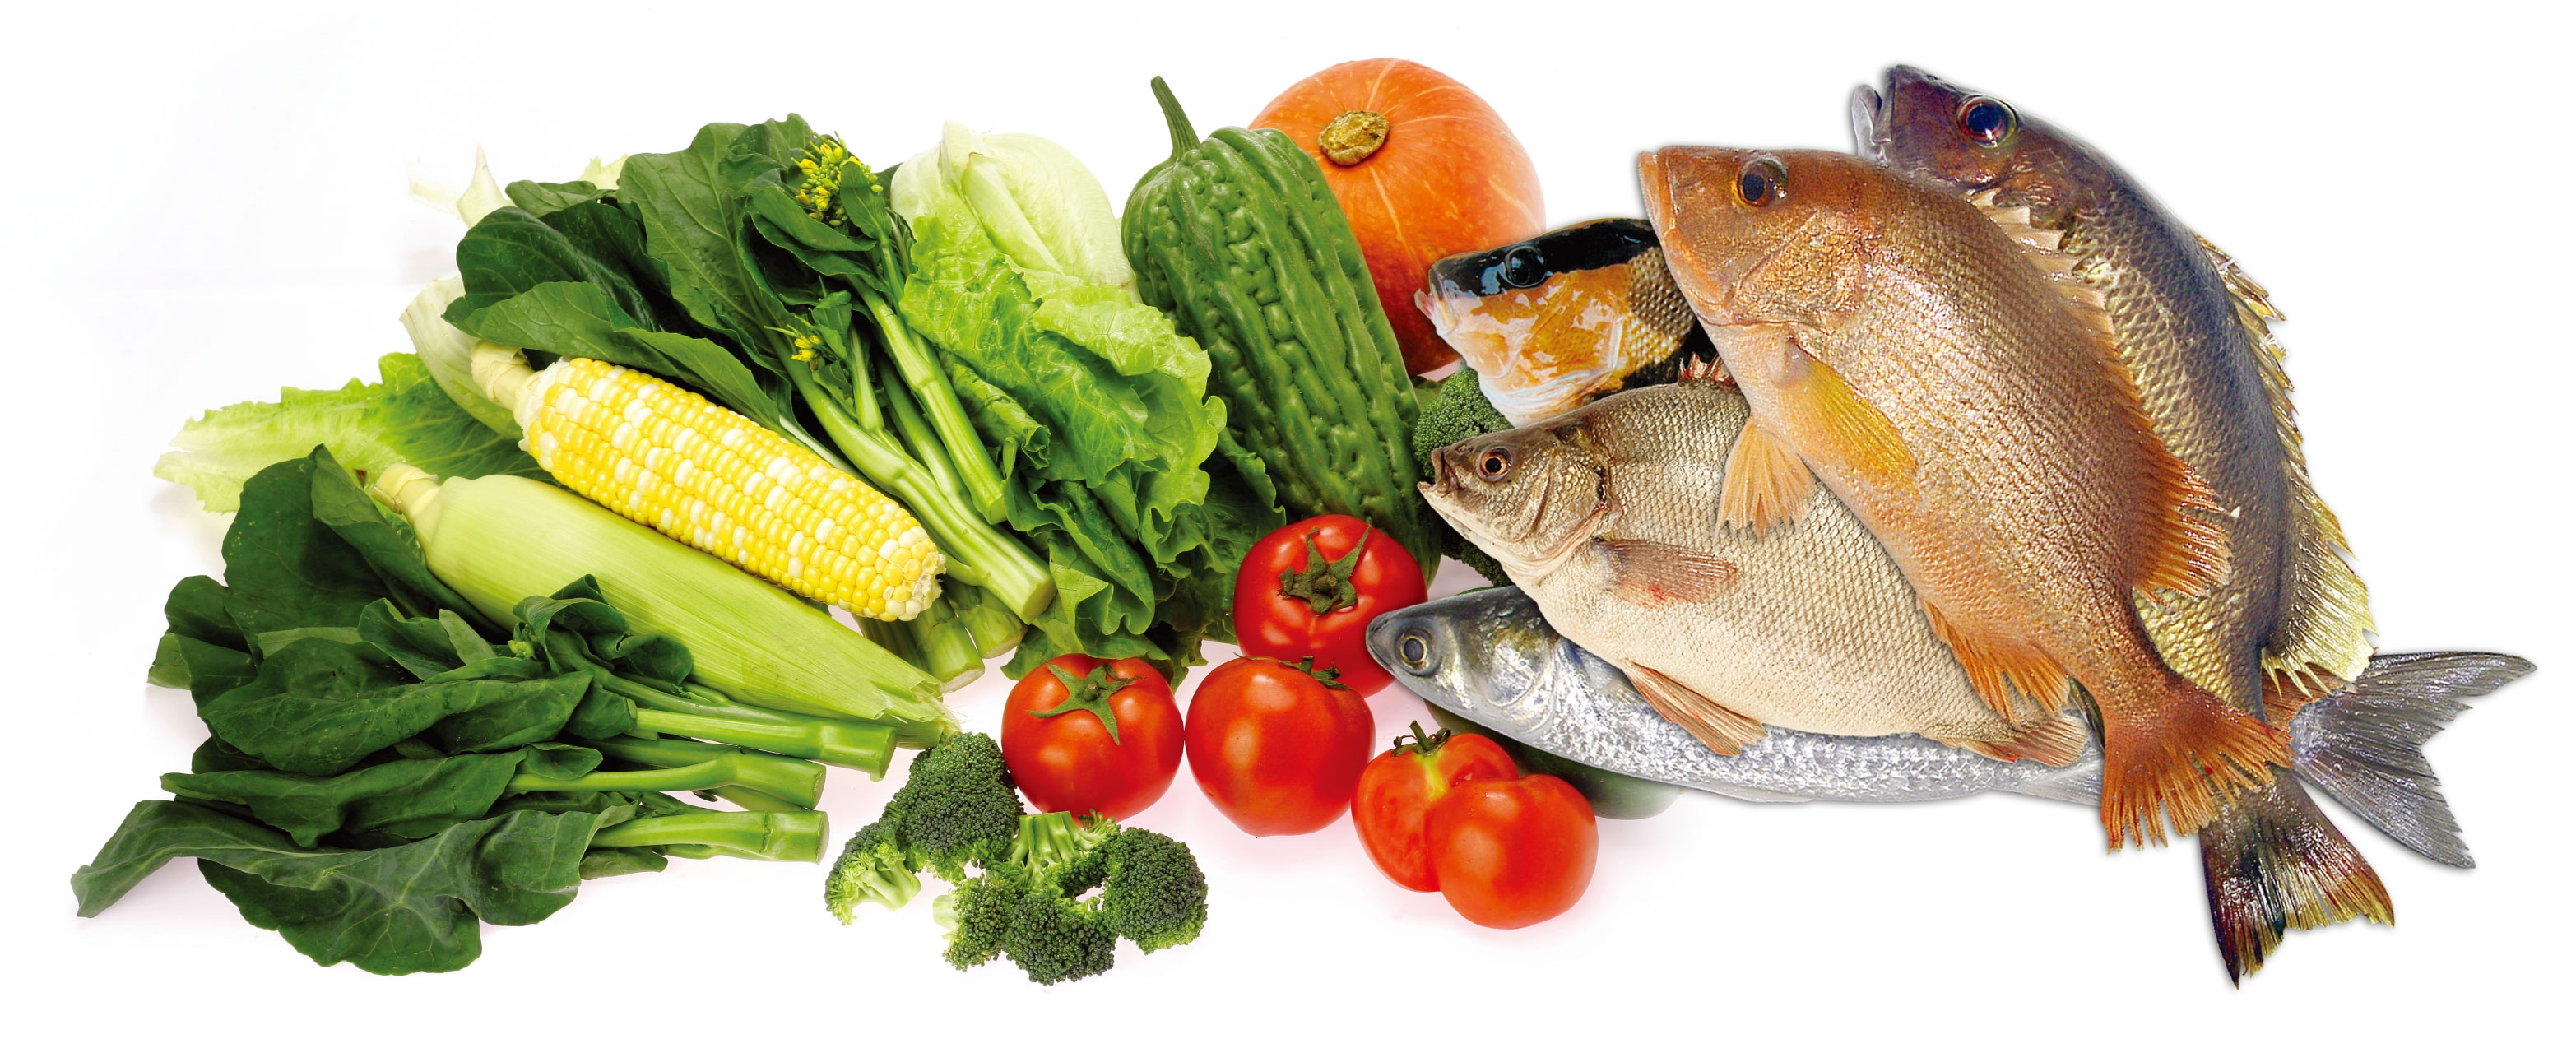 Eating veggies athletic performance training center for Fish with vegetables